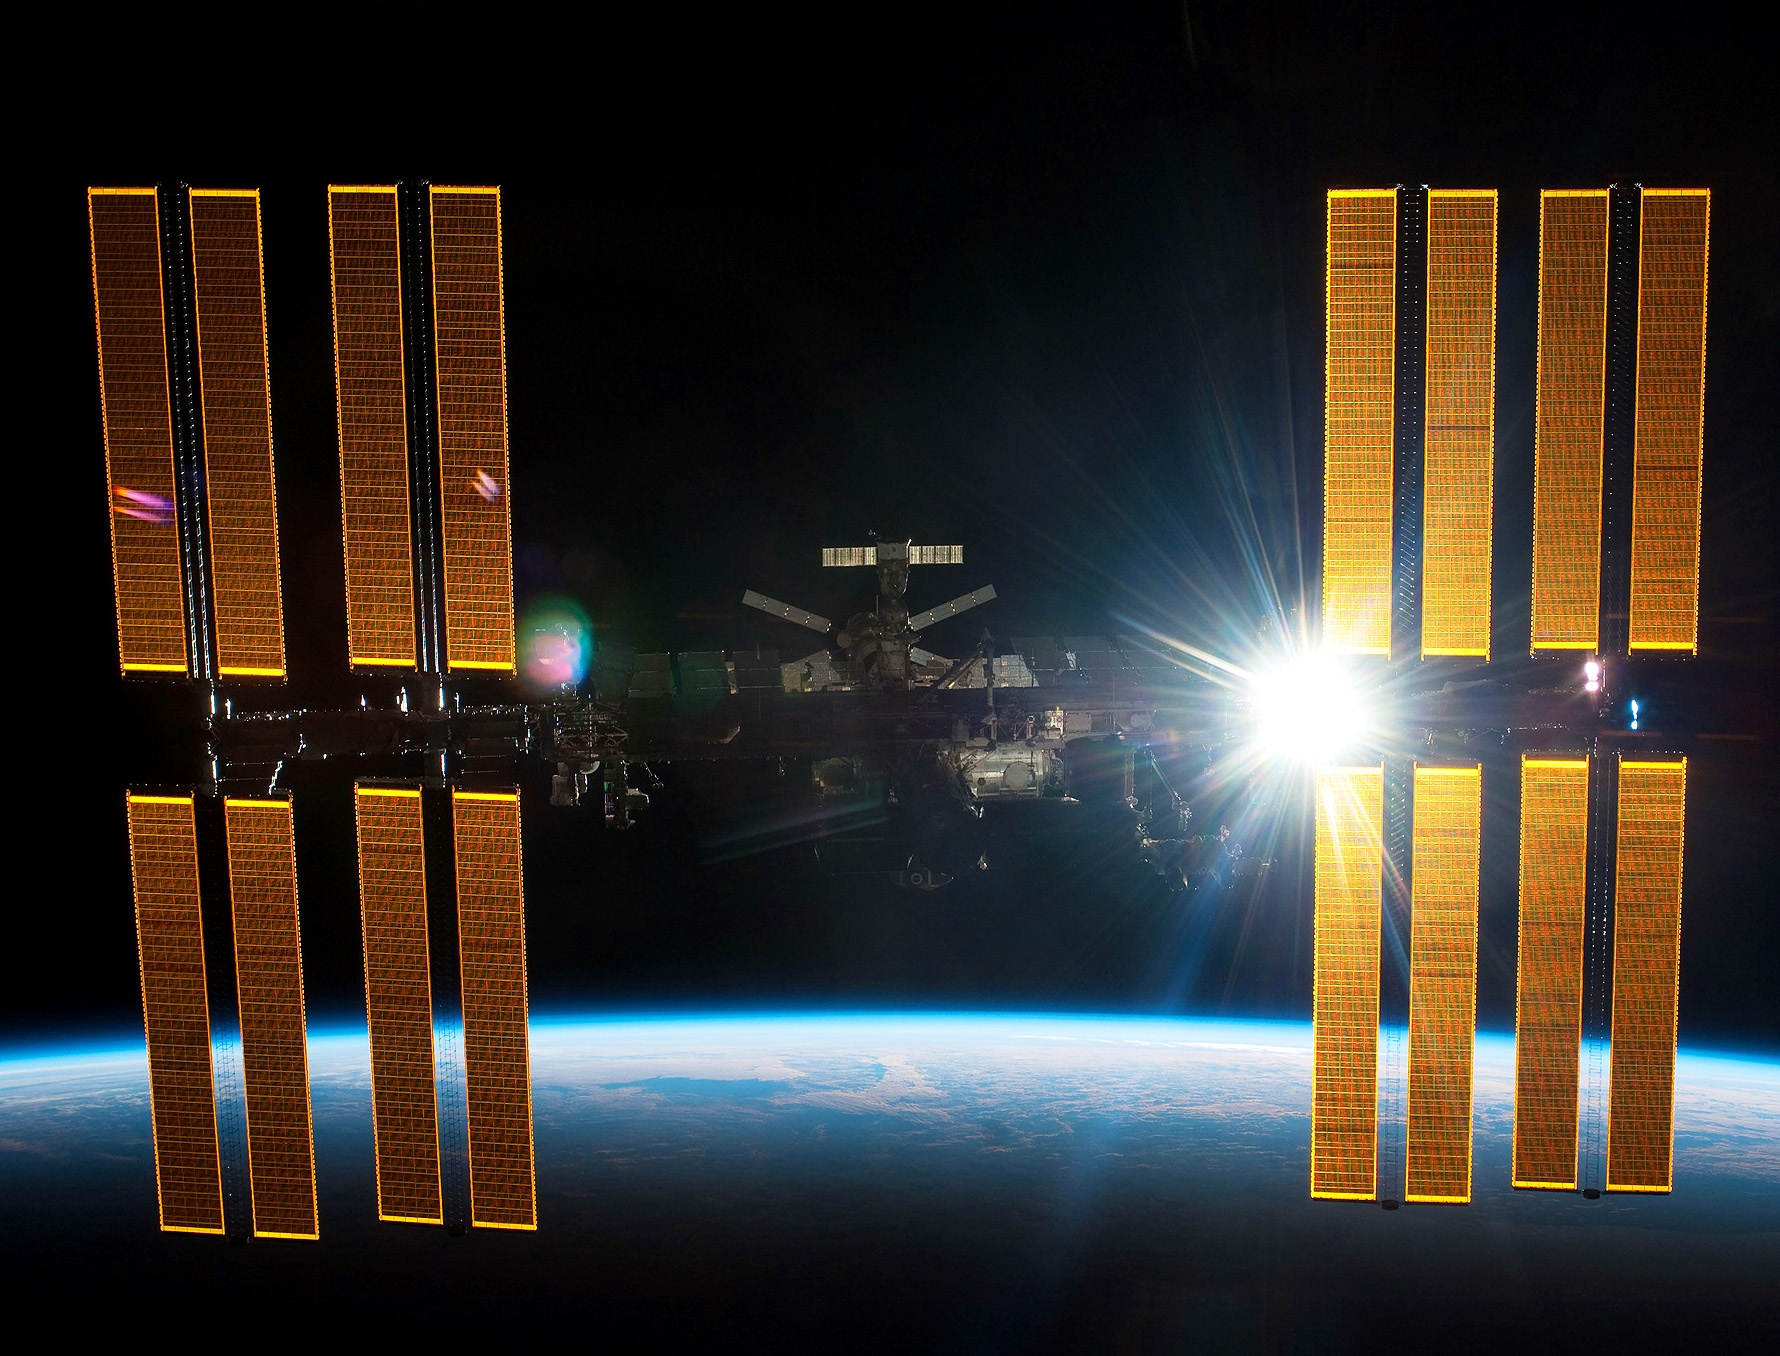 U.S./China Space Station Cooperation: Open the Airlock, Obama?